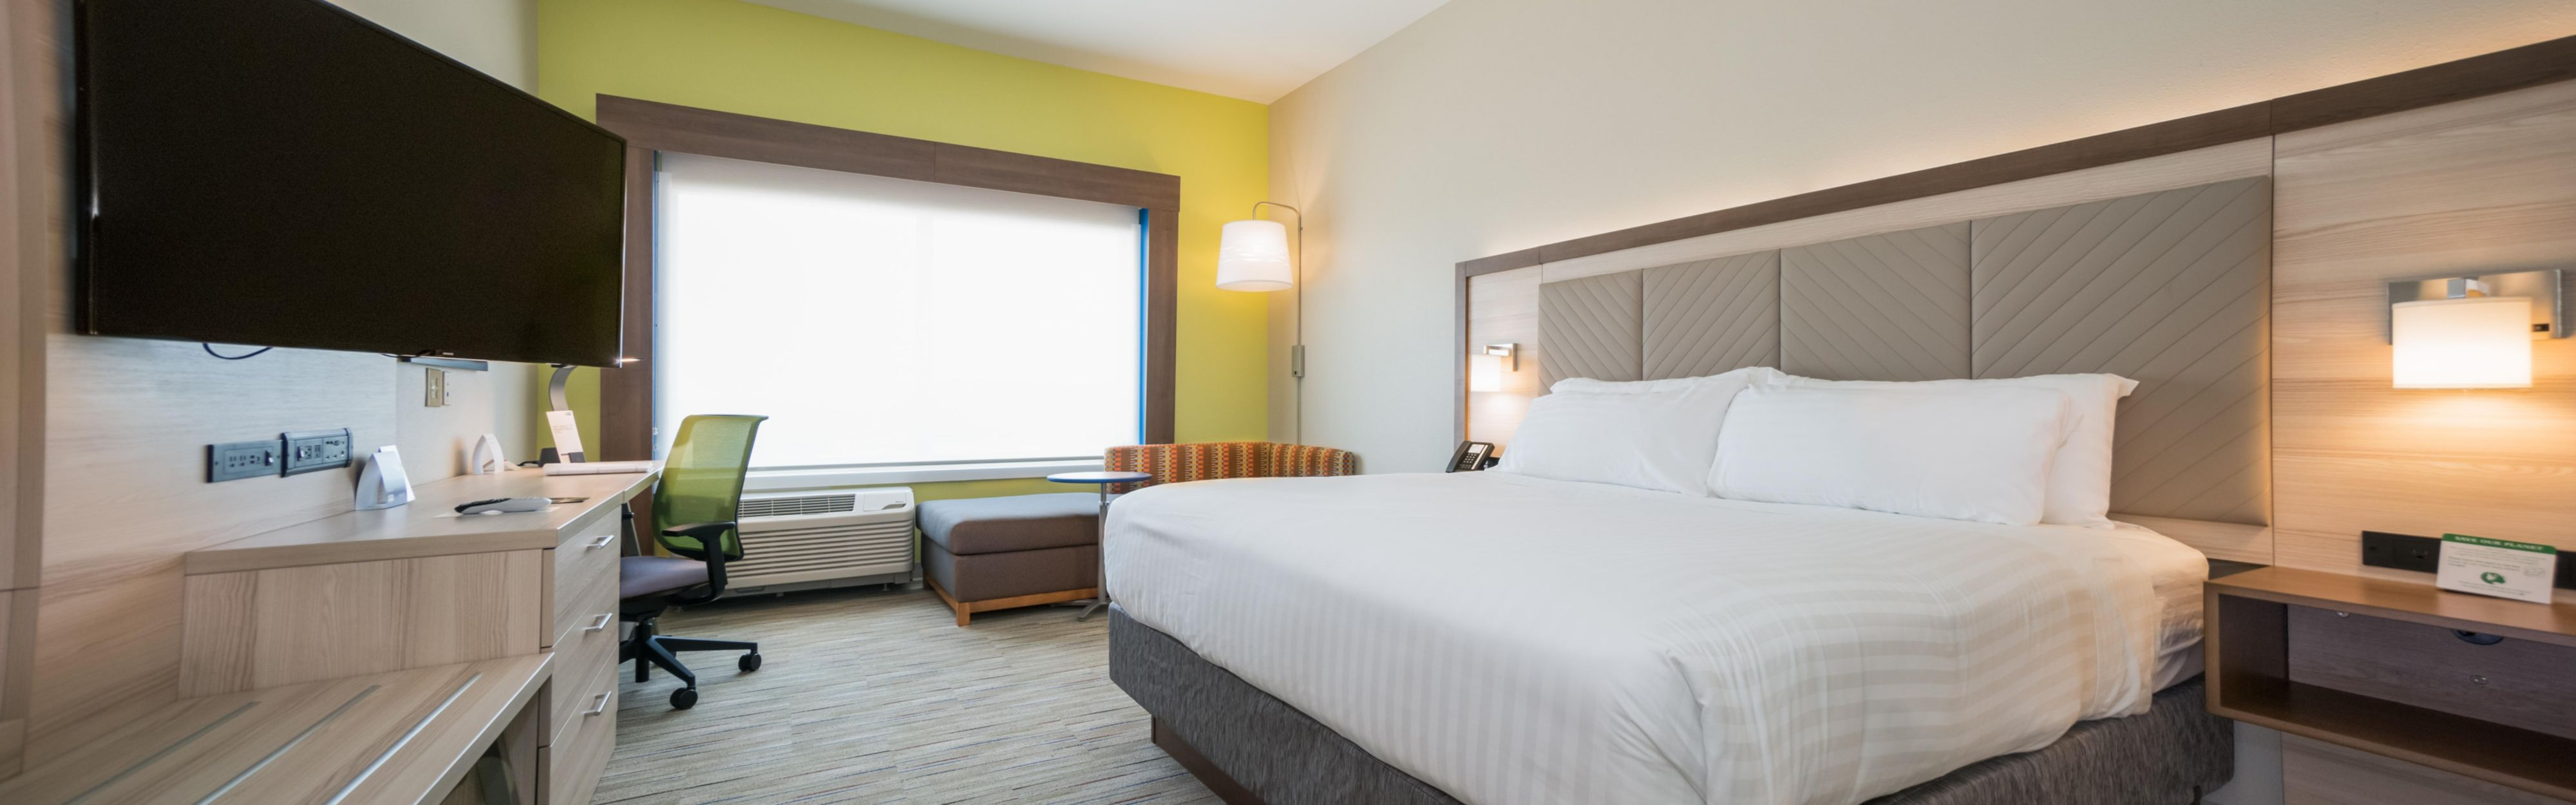 Holiday Inn Express & Suites Southaven Central - Memphis image 1